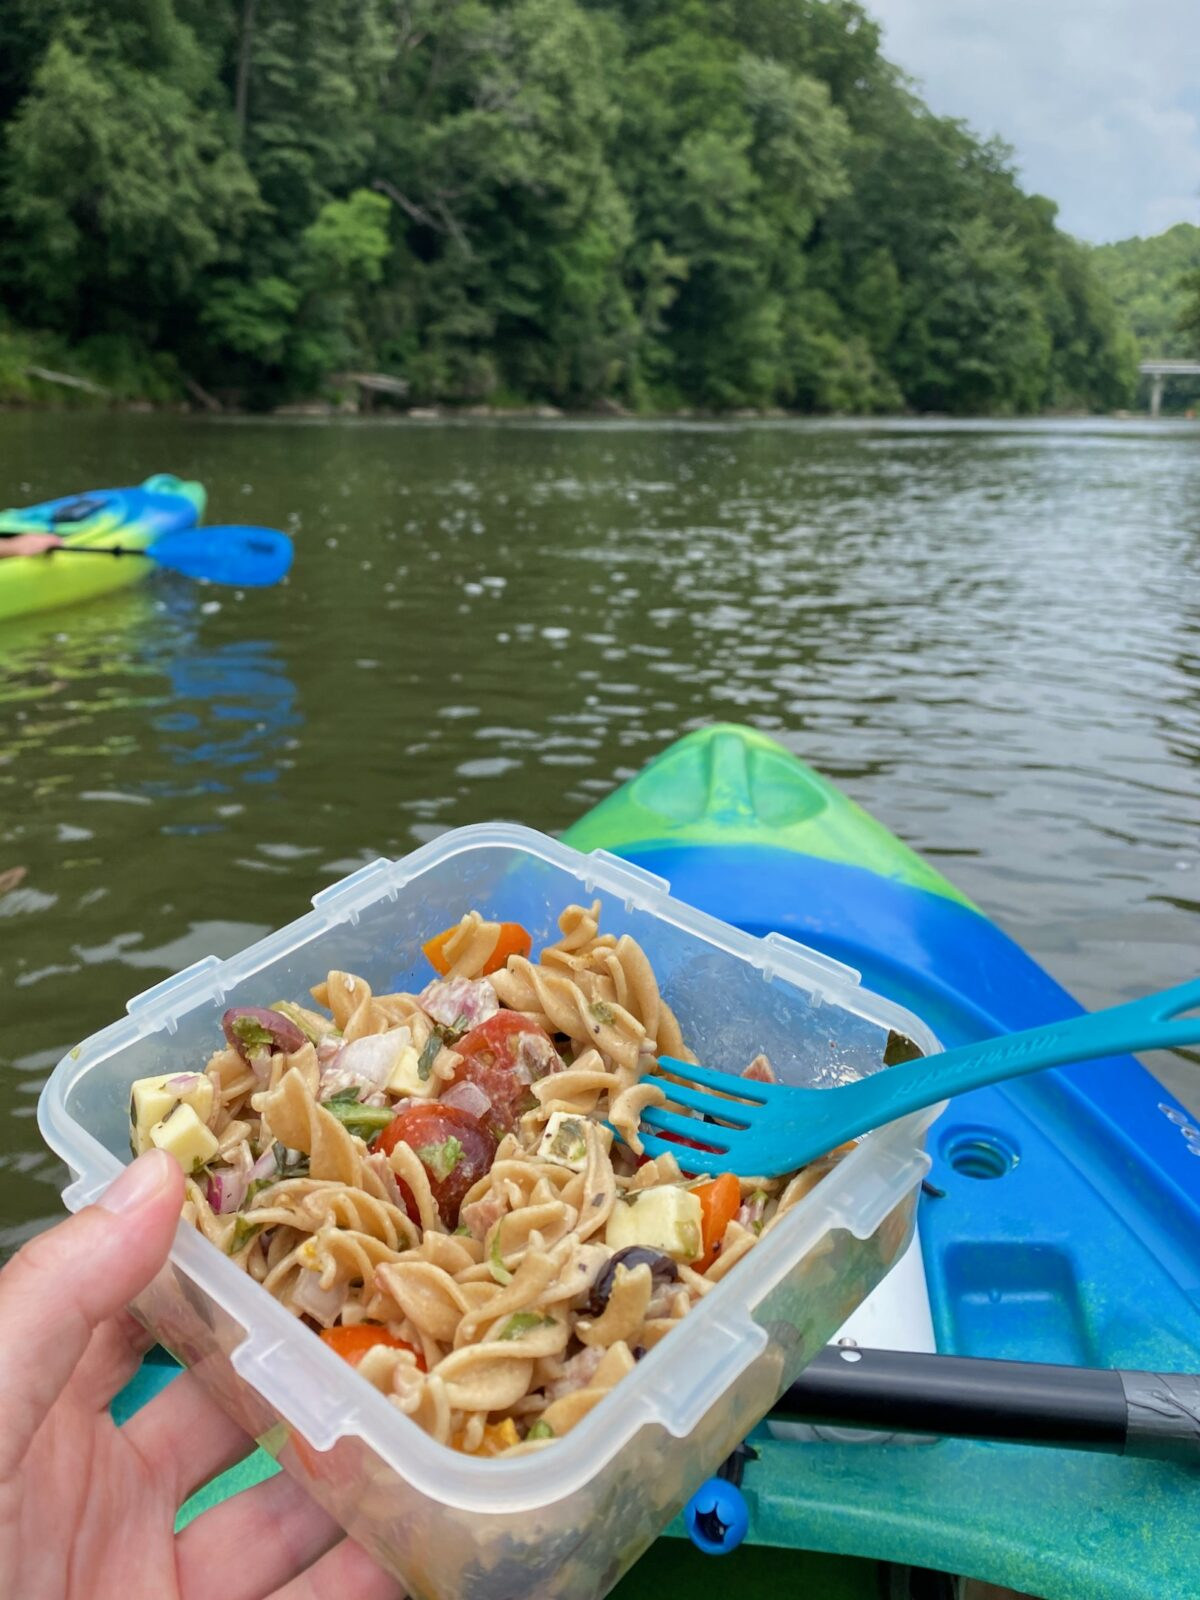 From a human perspective, sitting on a kayak on the water, holding a jar of pasta salad.